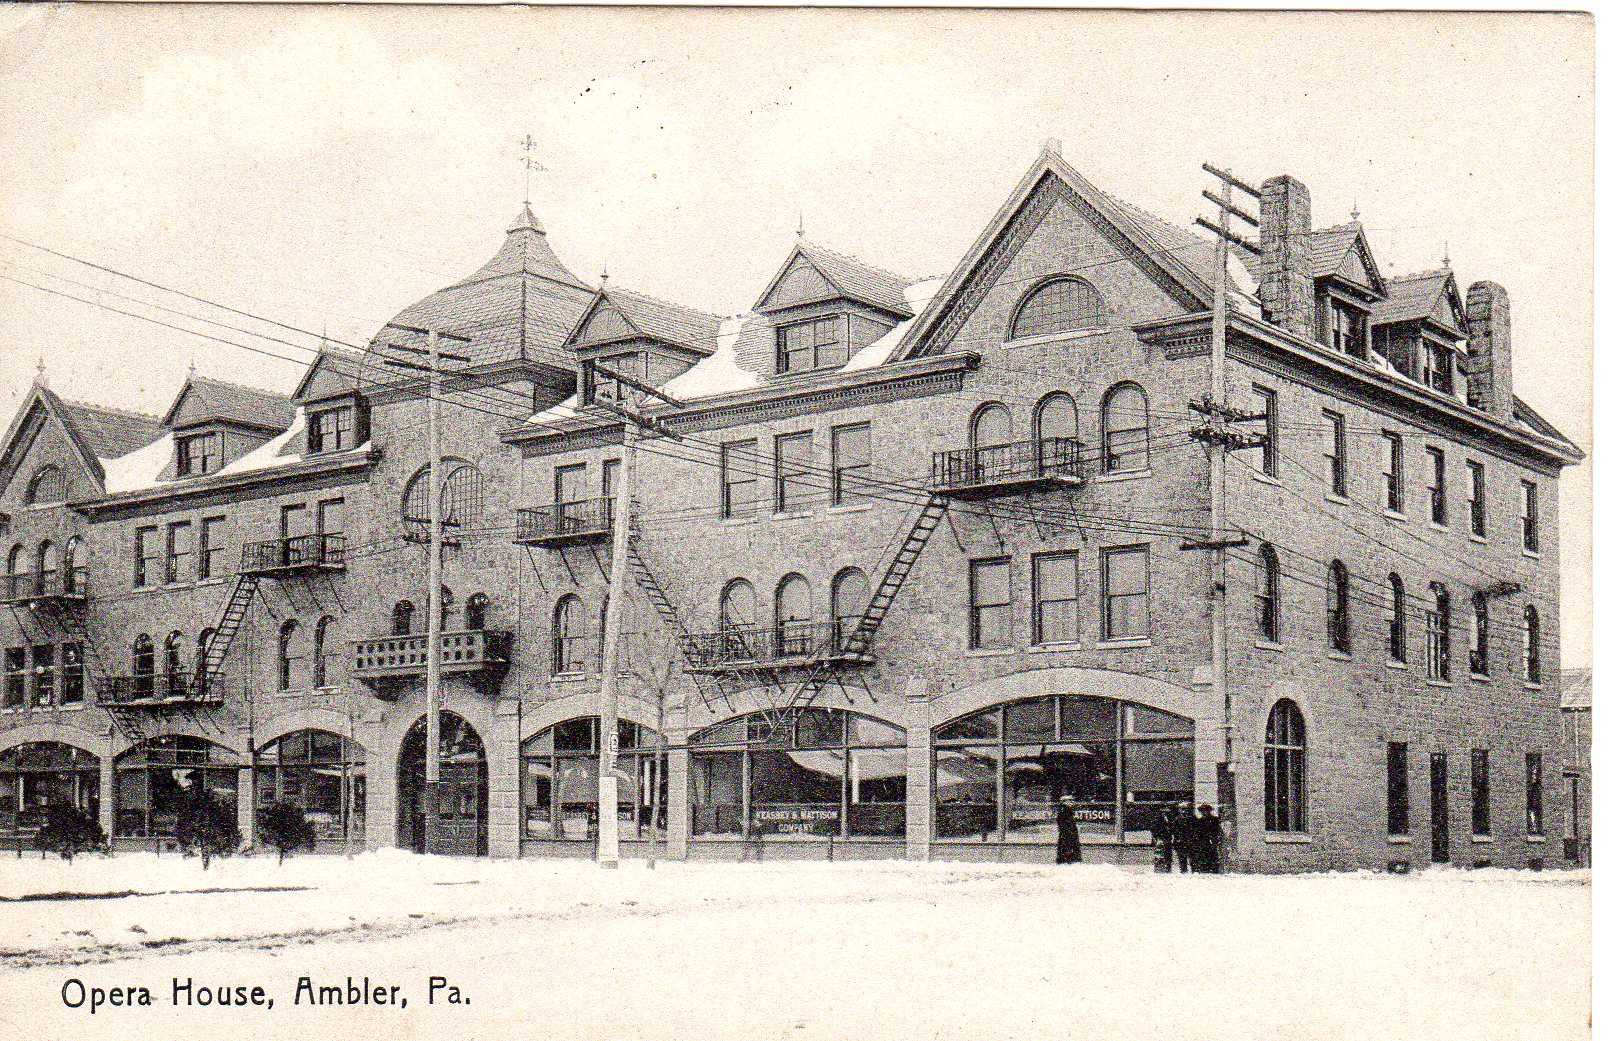 Post Card Collection (E Simon)_2682_53_Opera House, Ambler, Pa_21 May 1908